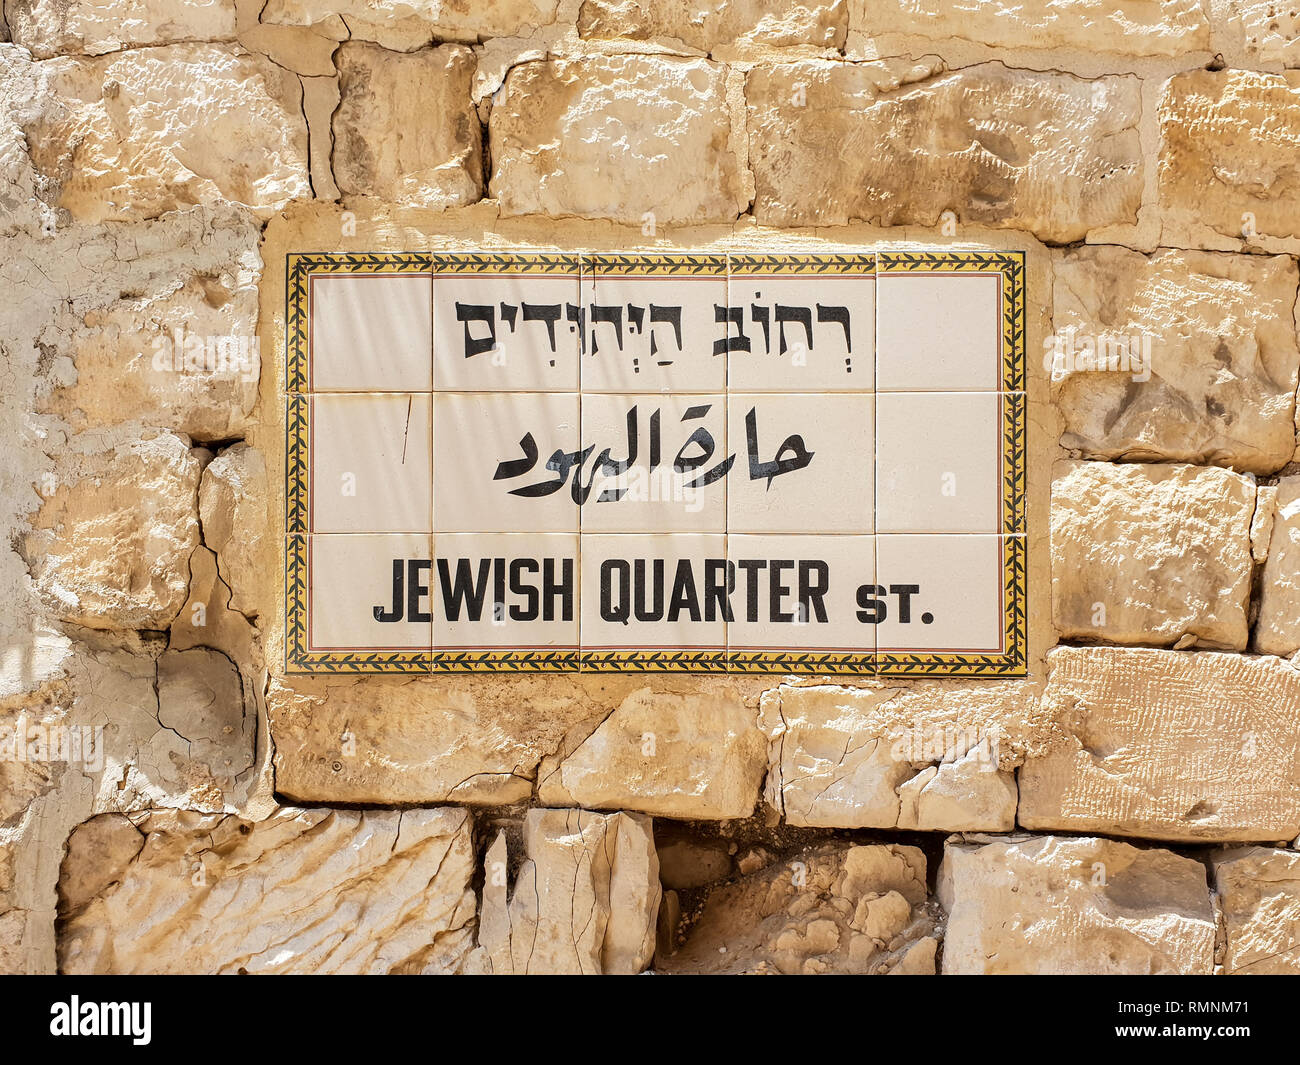 Detail of a street sign pointing to the Jewish quarter in the Old Town of Jerusalem, Israel Stock Photo